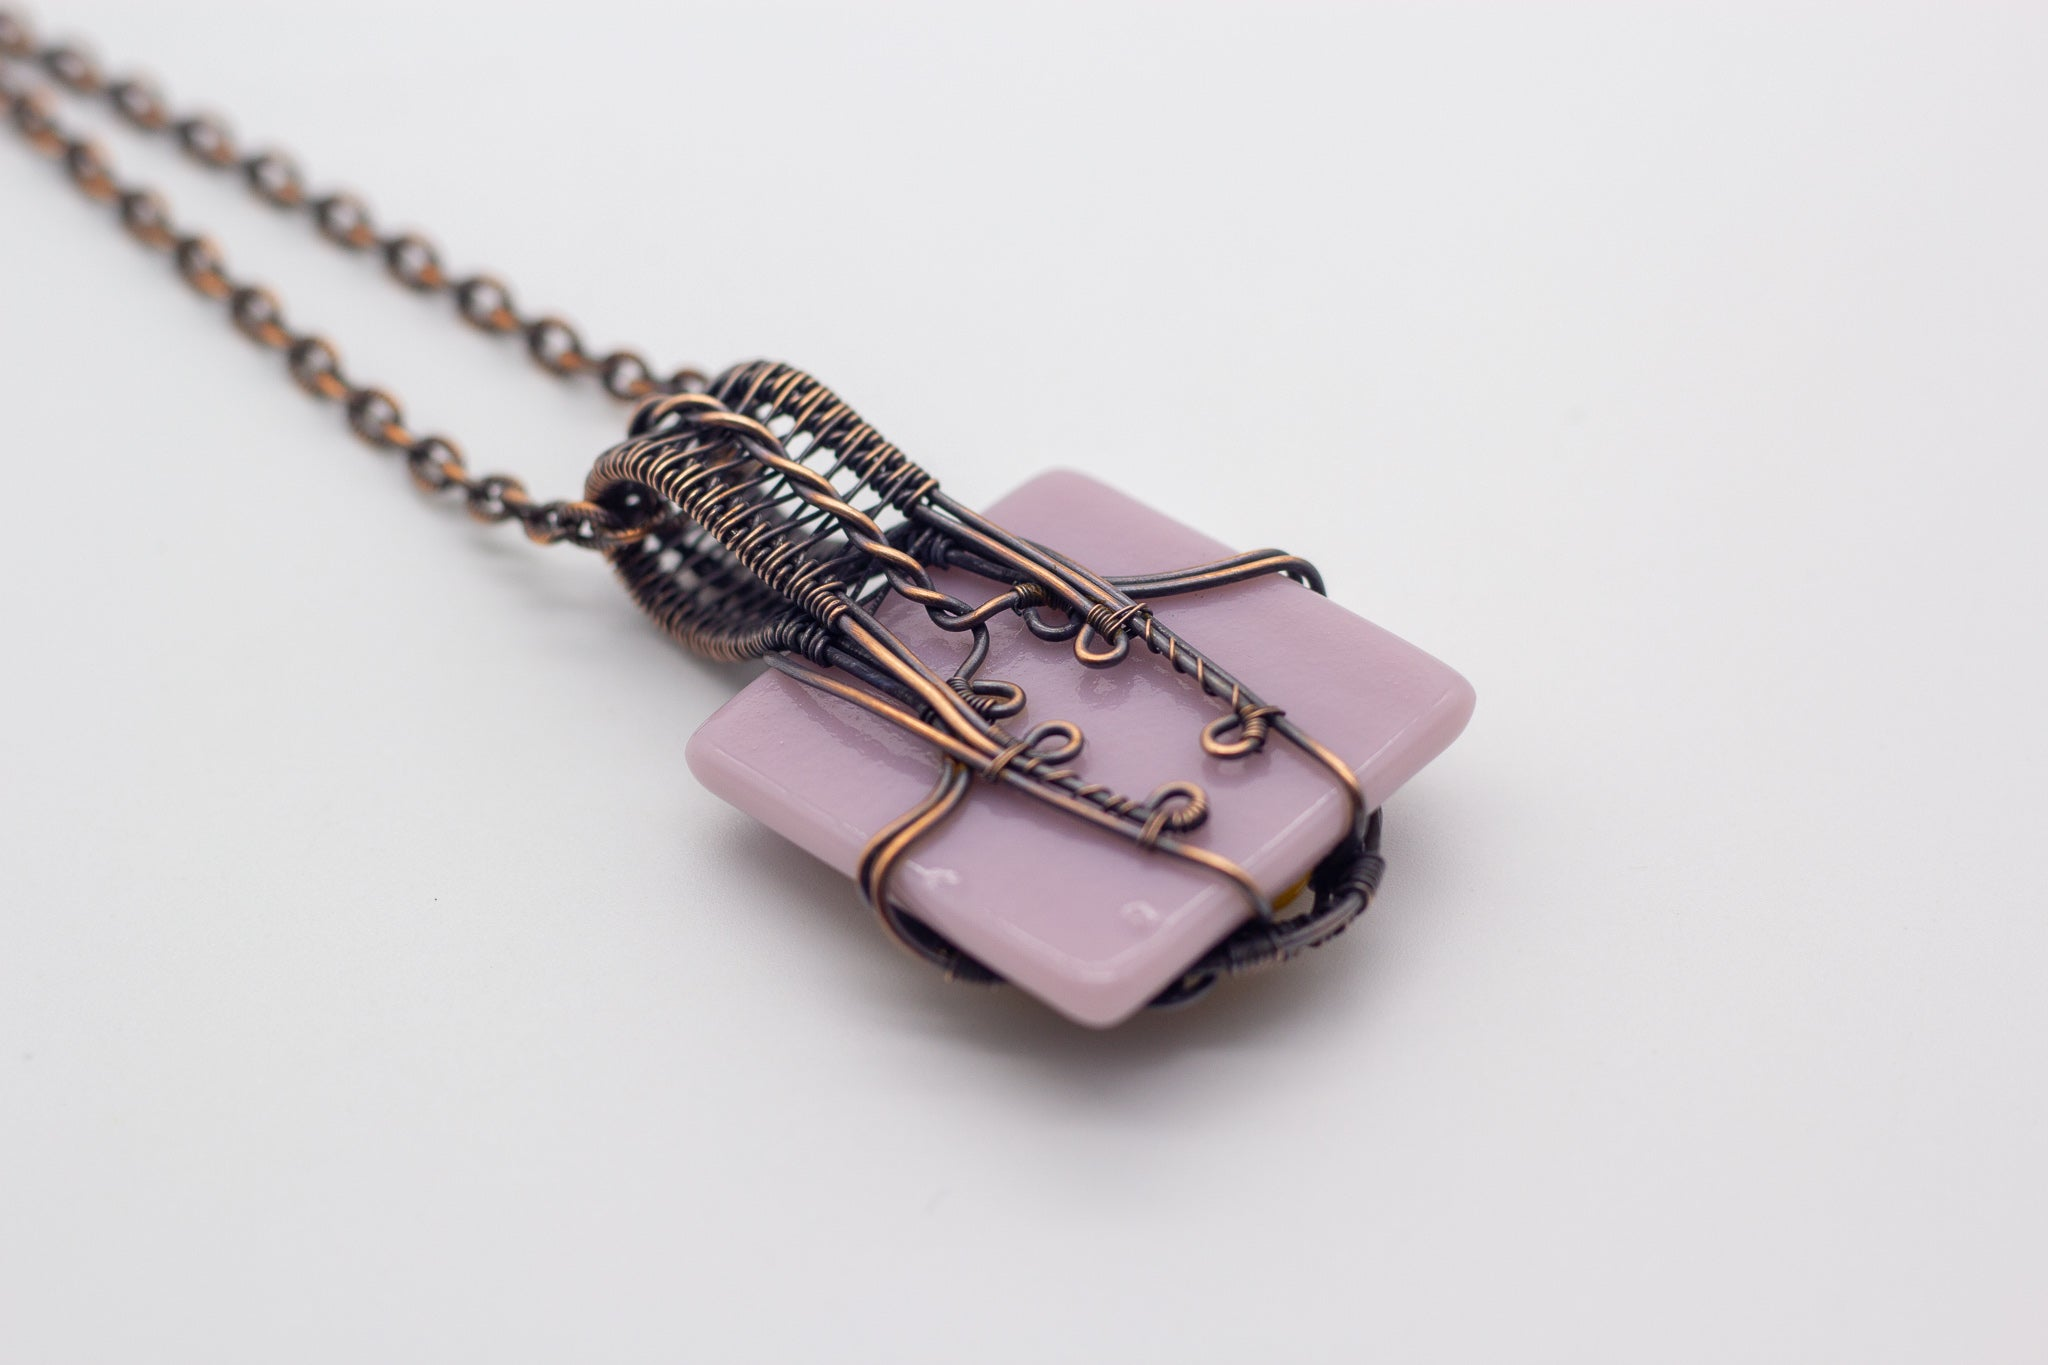 Lavender and Yellow Fused Glass Pendant with Copper Wire Wrapping